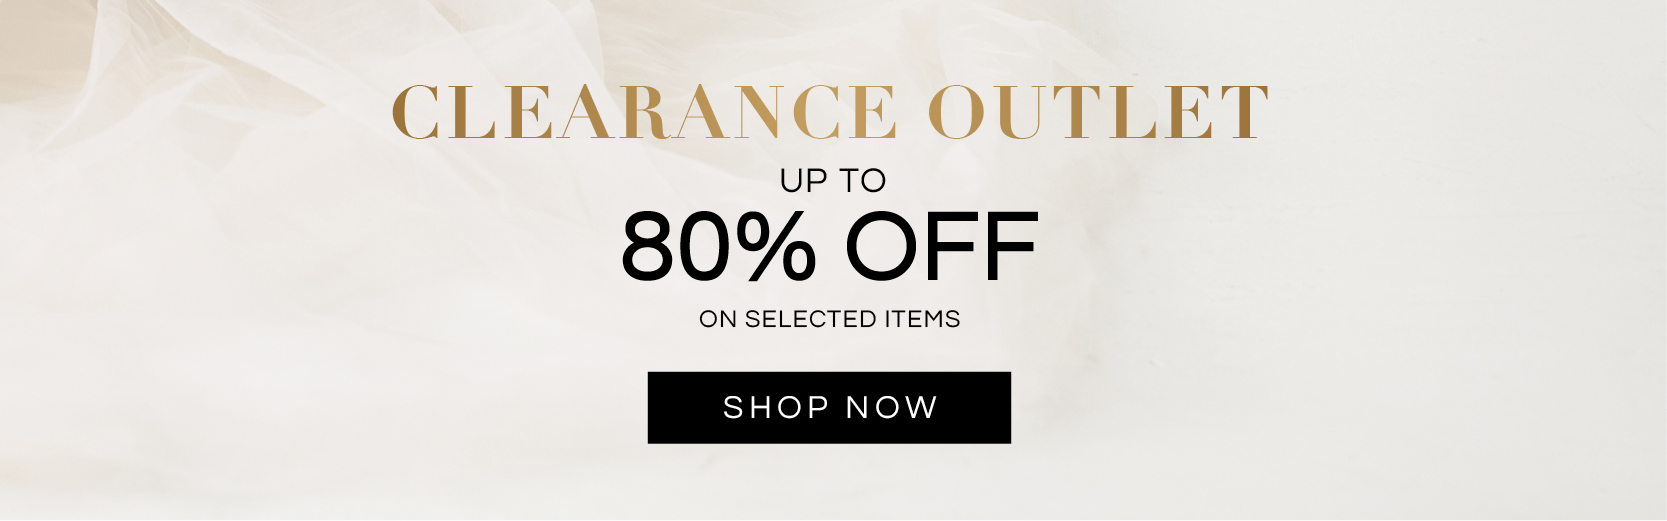 Up to 80% OFF Clearance Outlet